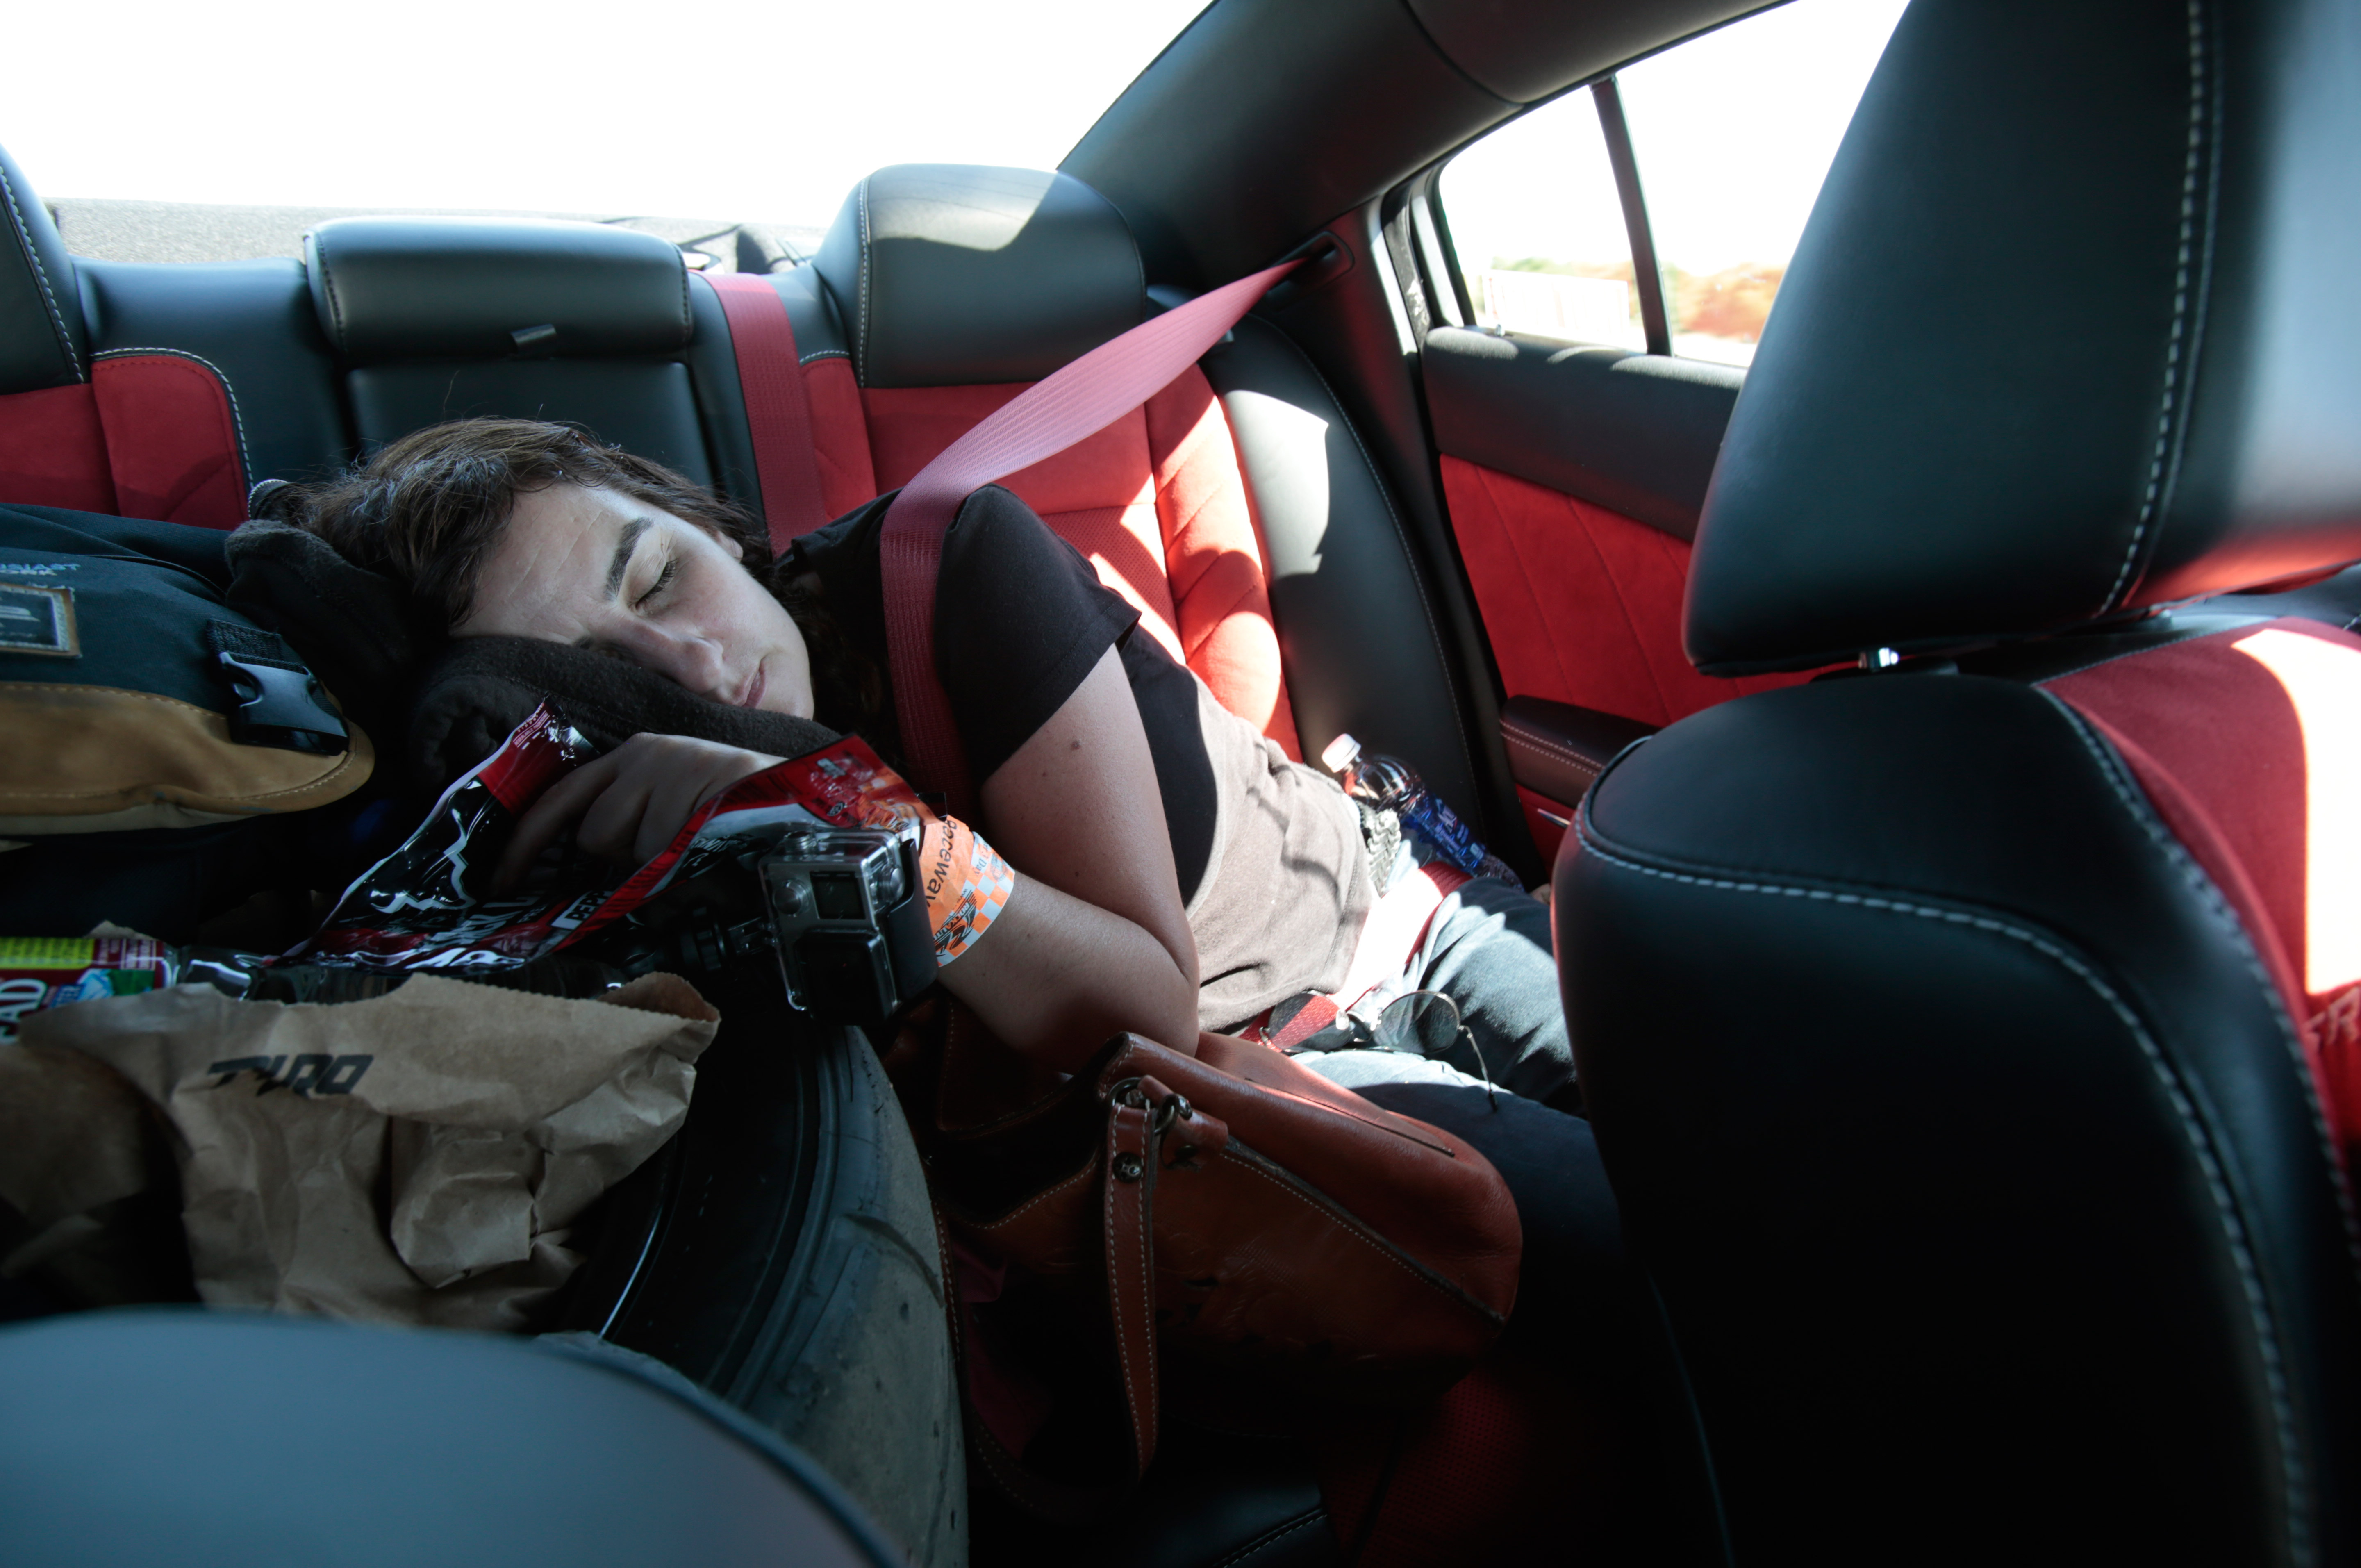 With just one track left to go, and no sleep for days, the soft Nitto tire in the back seat became a coveted nap spot.